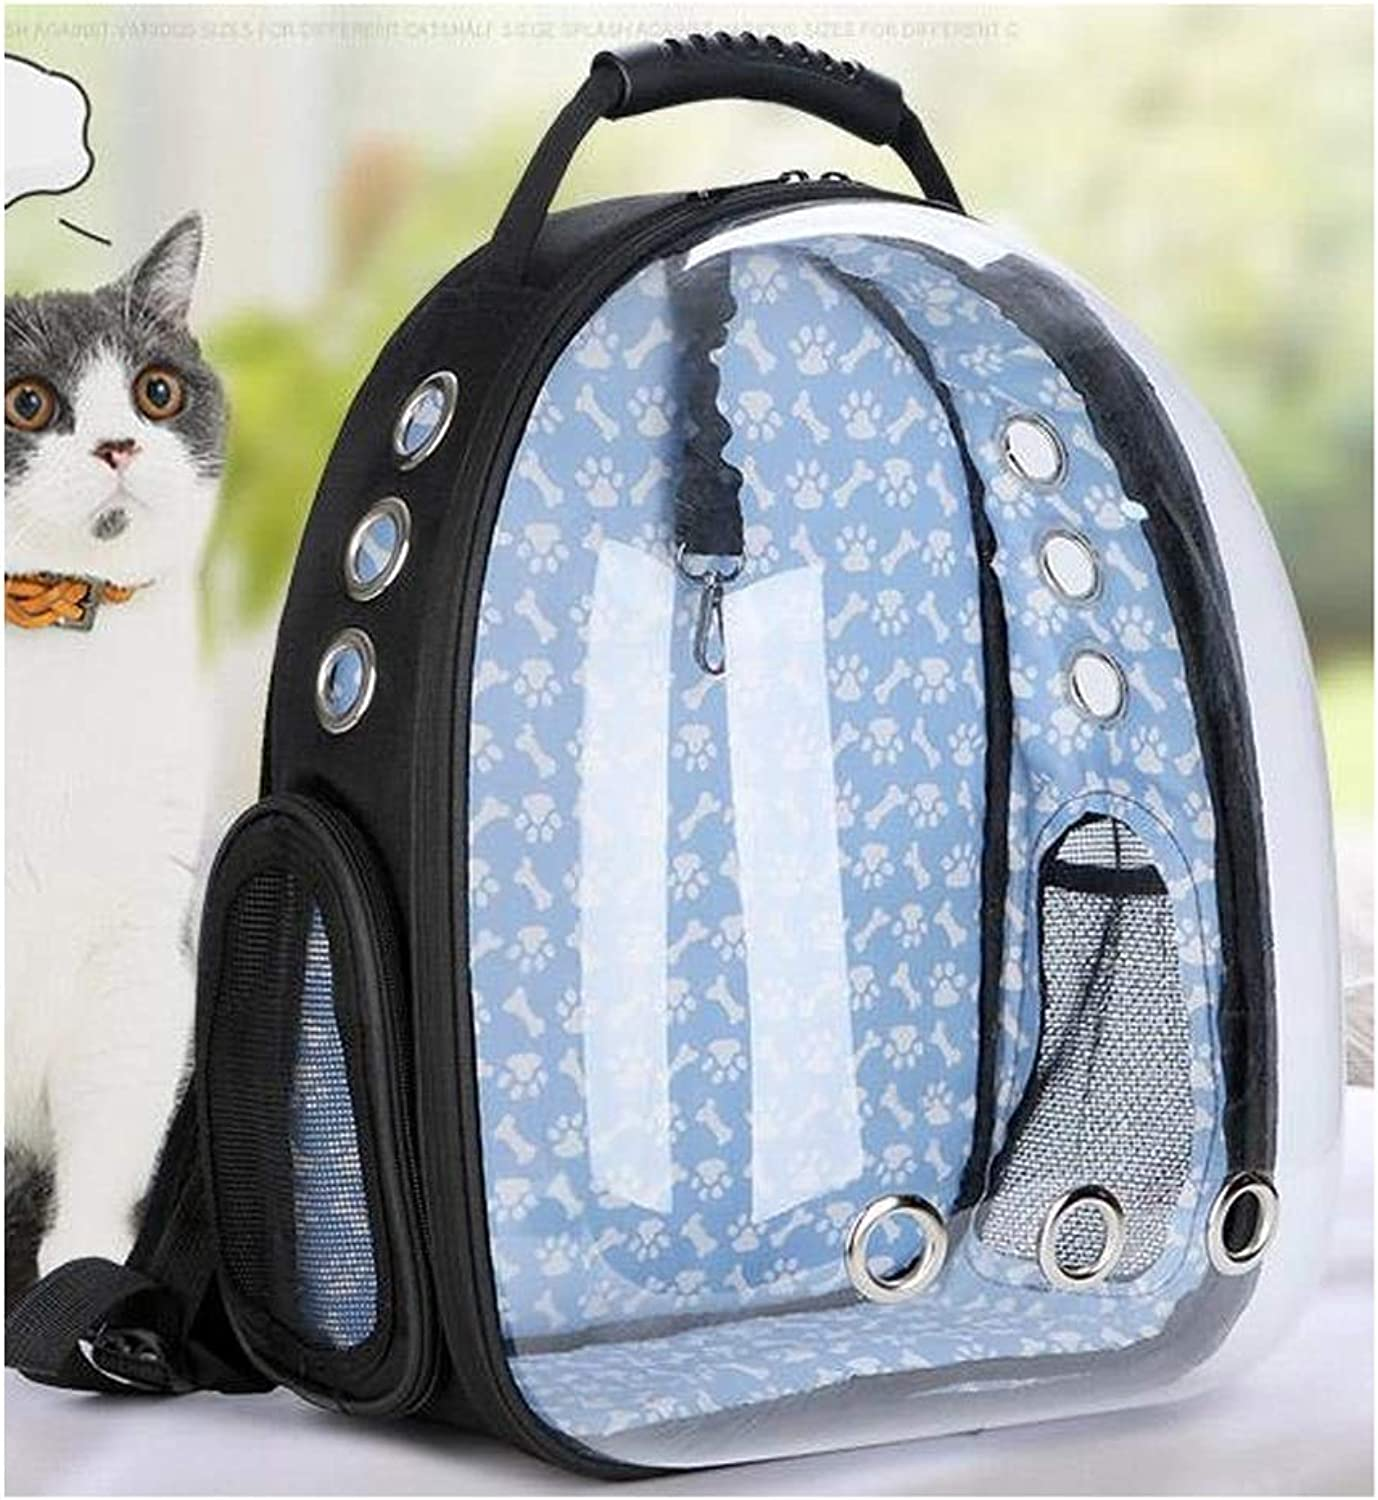 LSXLSD Astronaut Pet Cat Dog Puppy Carrier Travel Bag Space Capsule Backpack BreathableAdopting Environmentallyfriendly PC Material